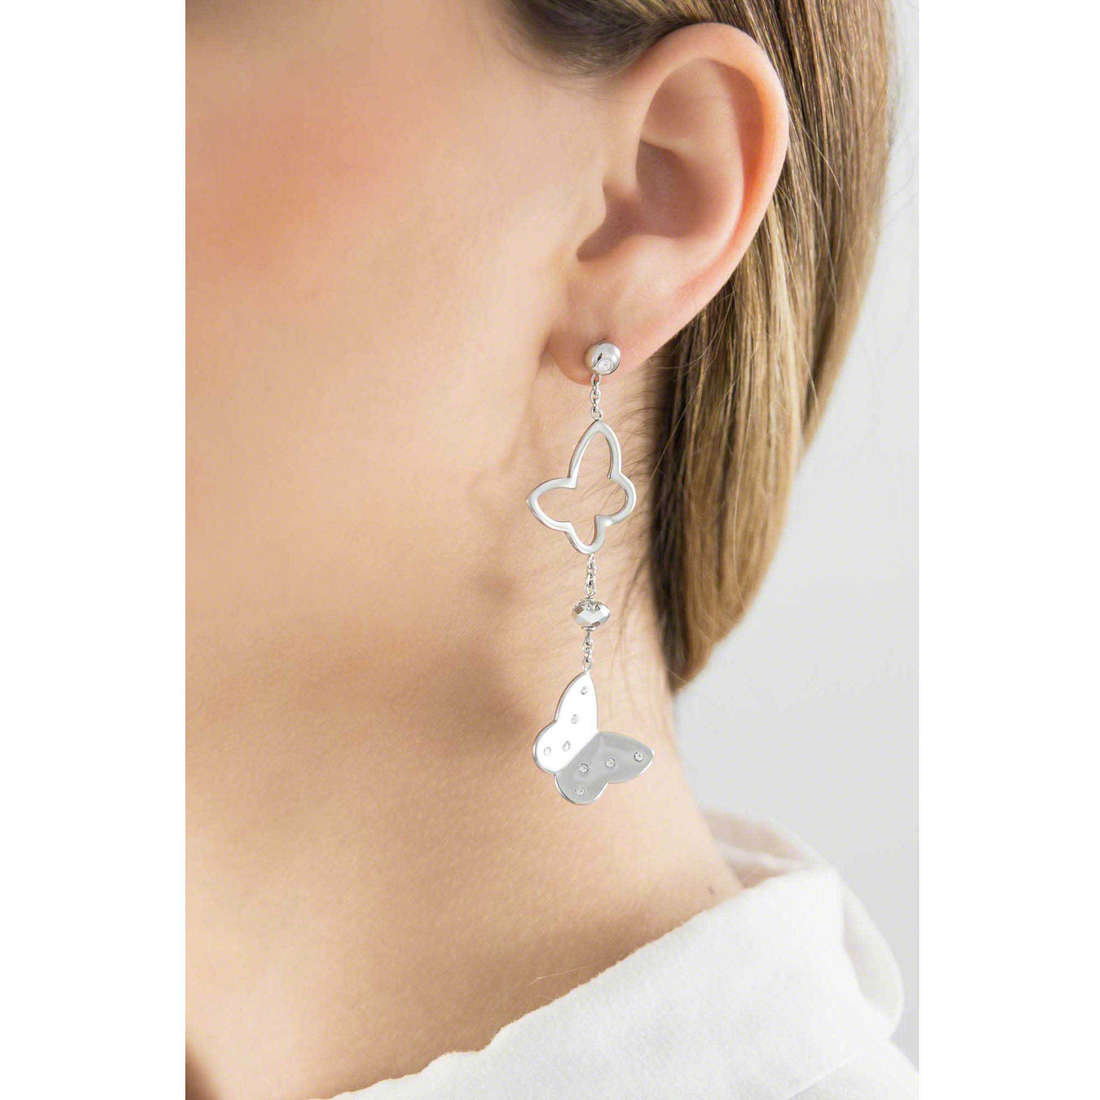 Brosway boucles d'oreille Lady femme BLD22 indosso